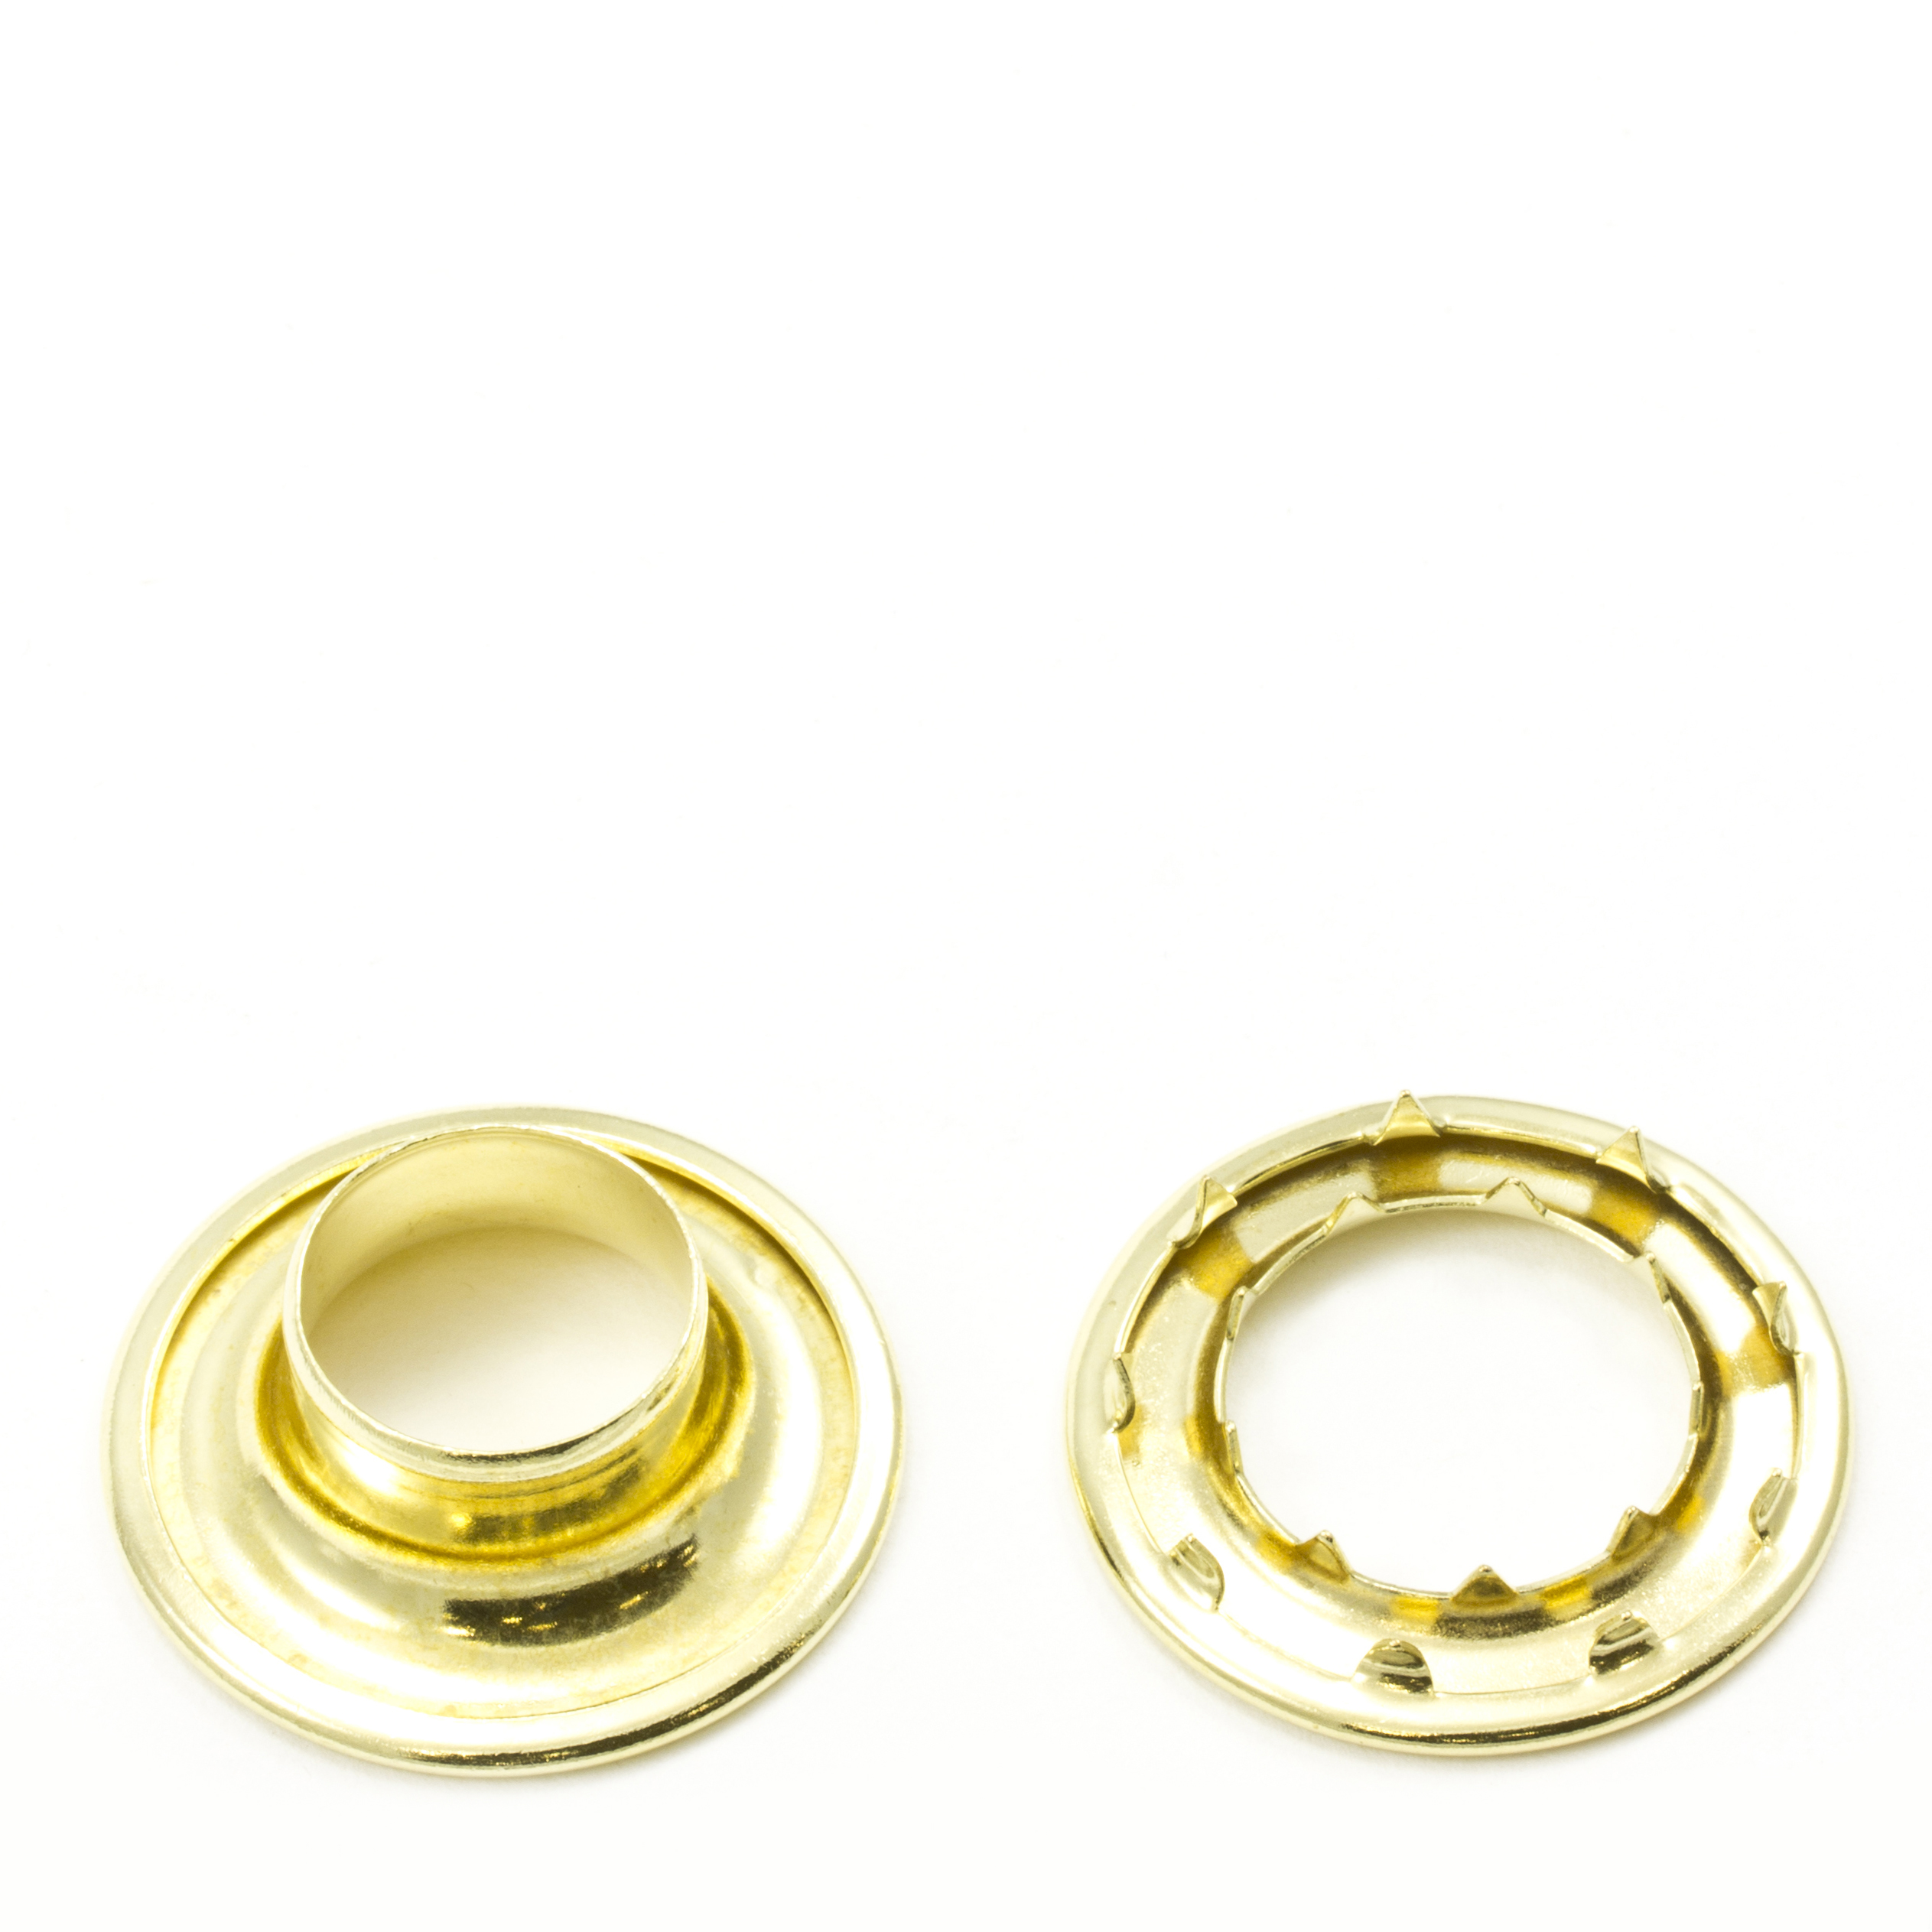 Rolled Rim Grommet with Spur Washer #6 Brass 3/4